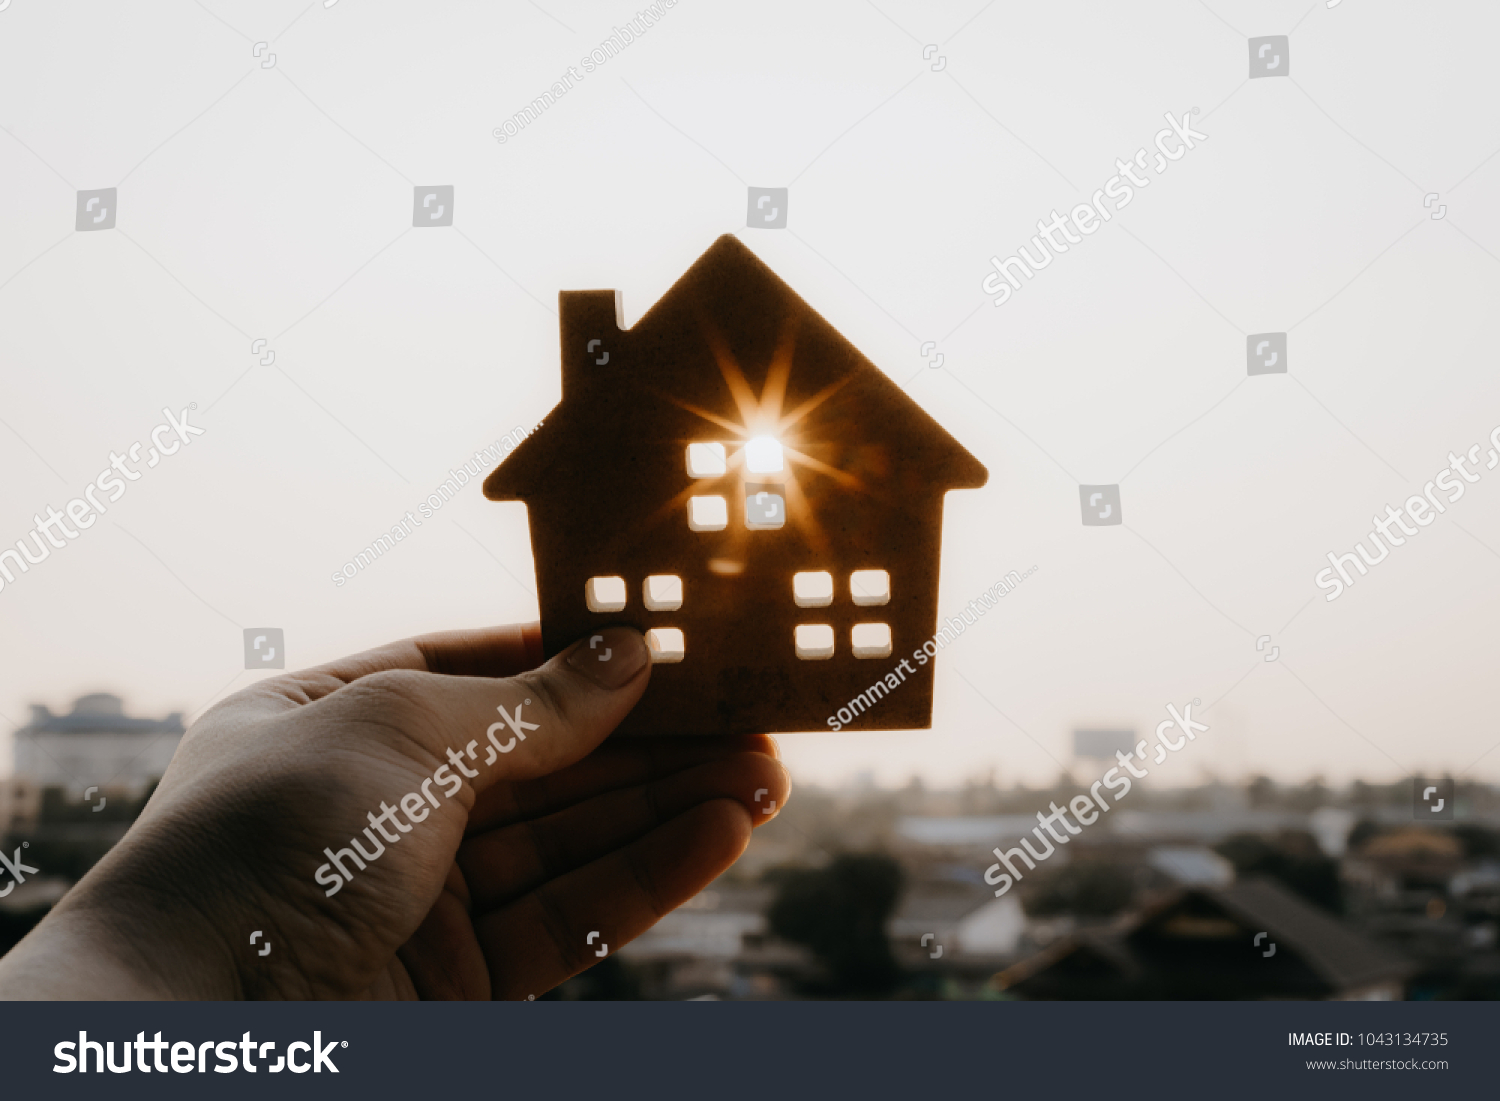 House model in home insurance broker agent 's hand or in salesman person. Real estate agent offer house, property insurance and security, affordable housing concepts #1043134735